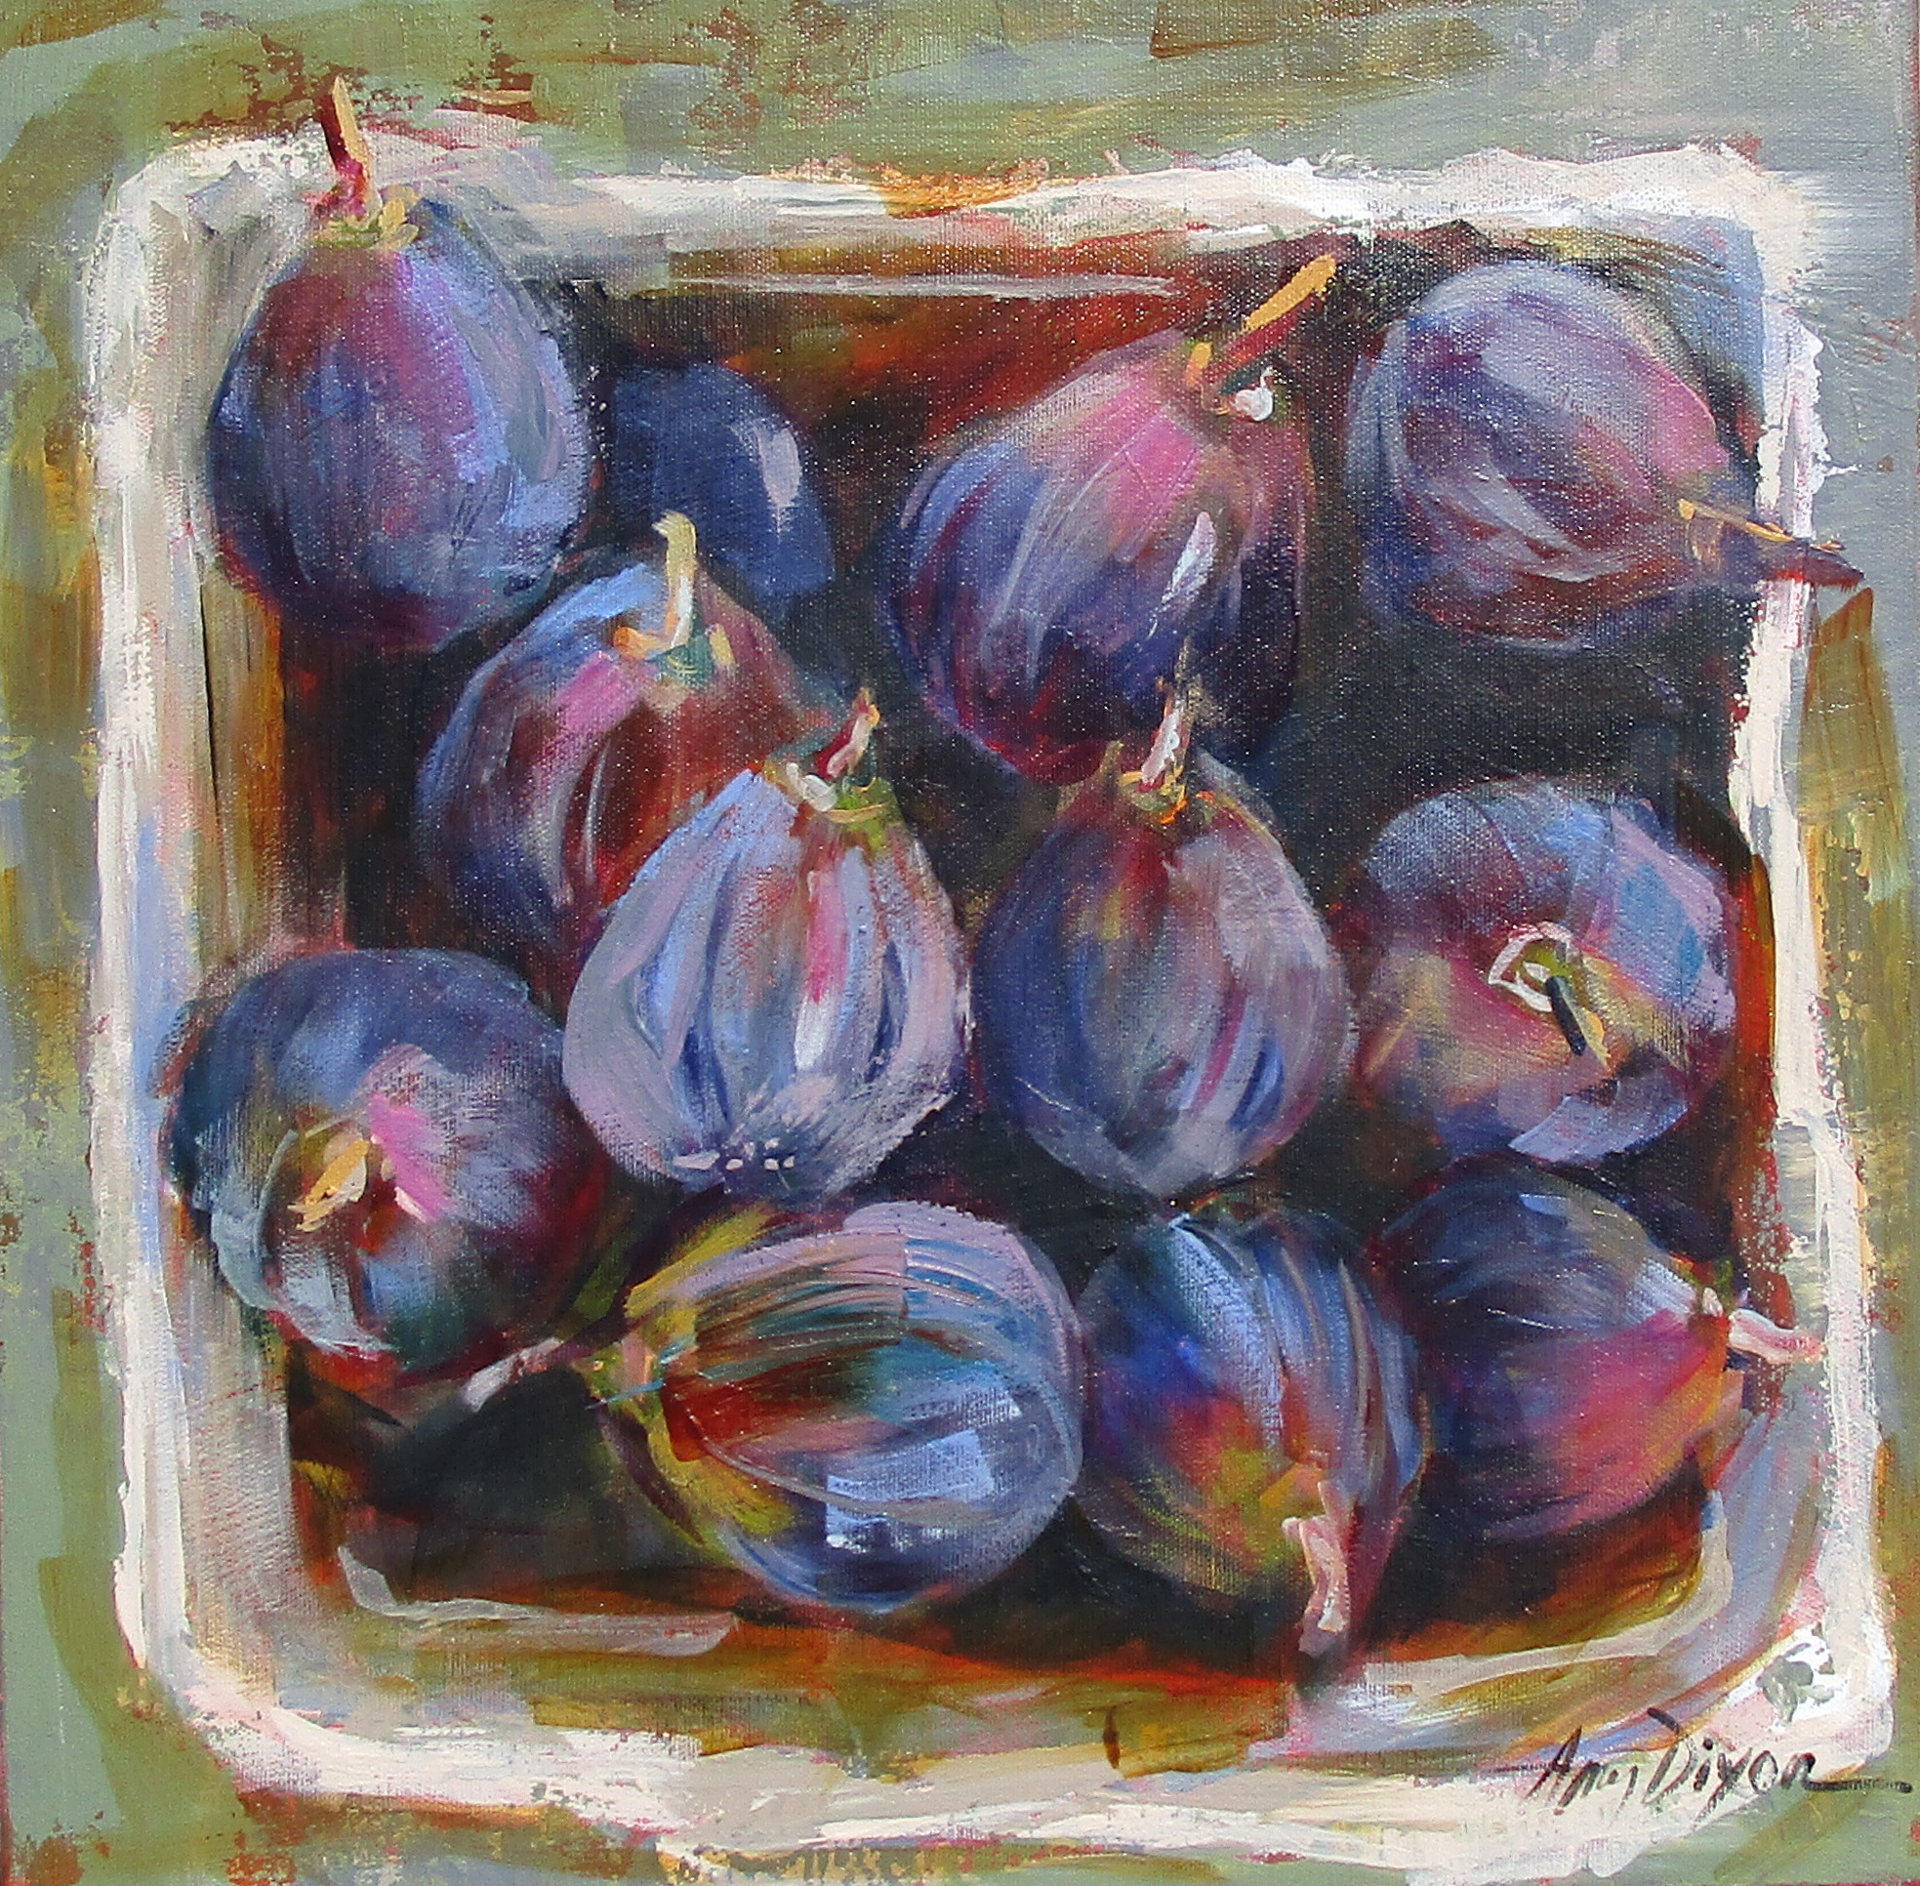 Figs by Amy Dixon